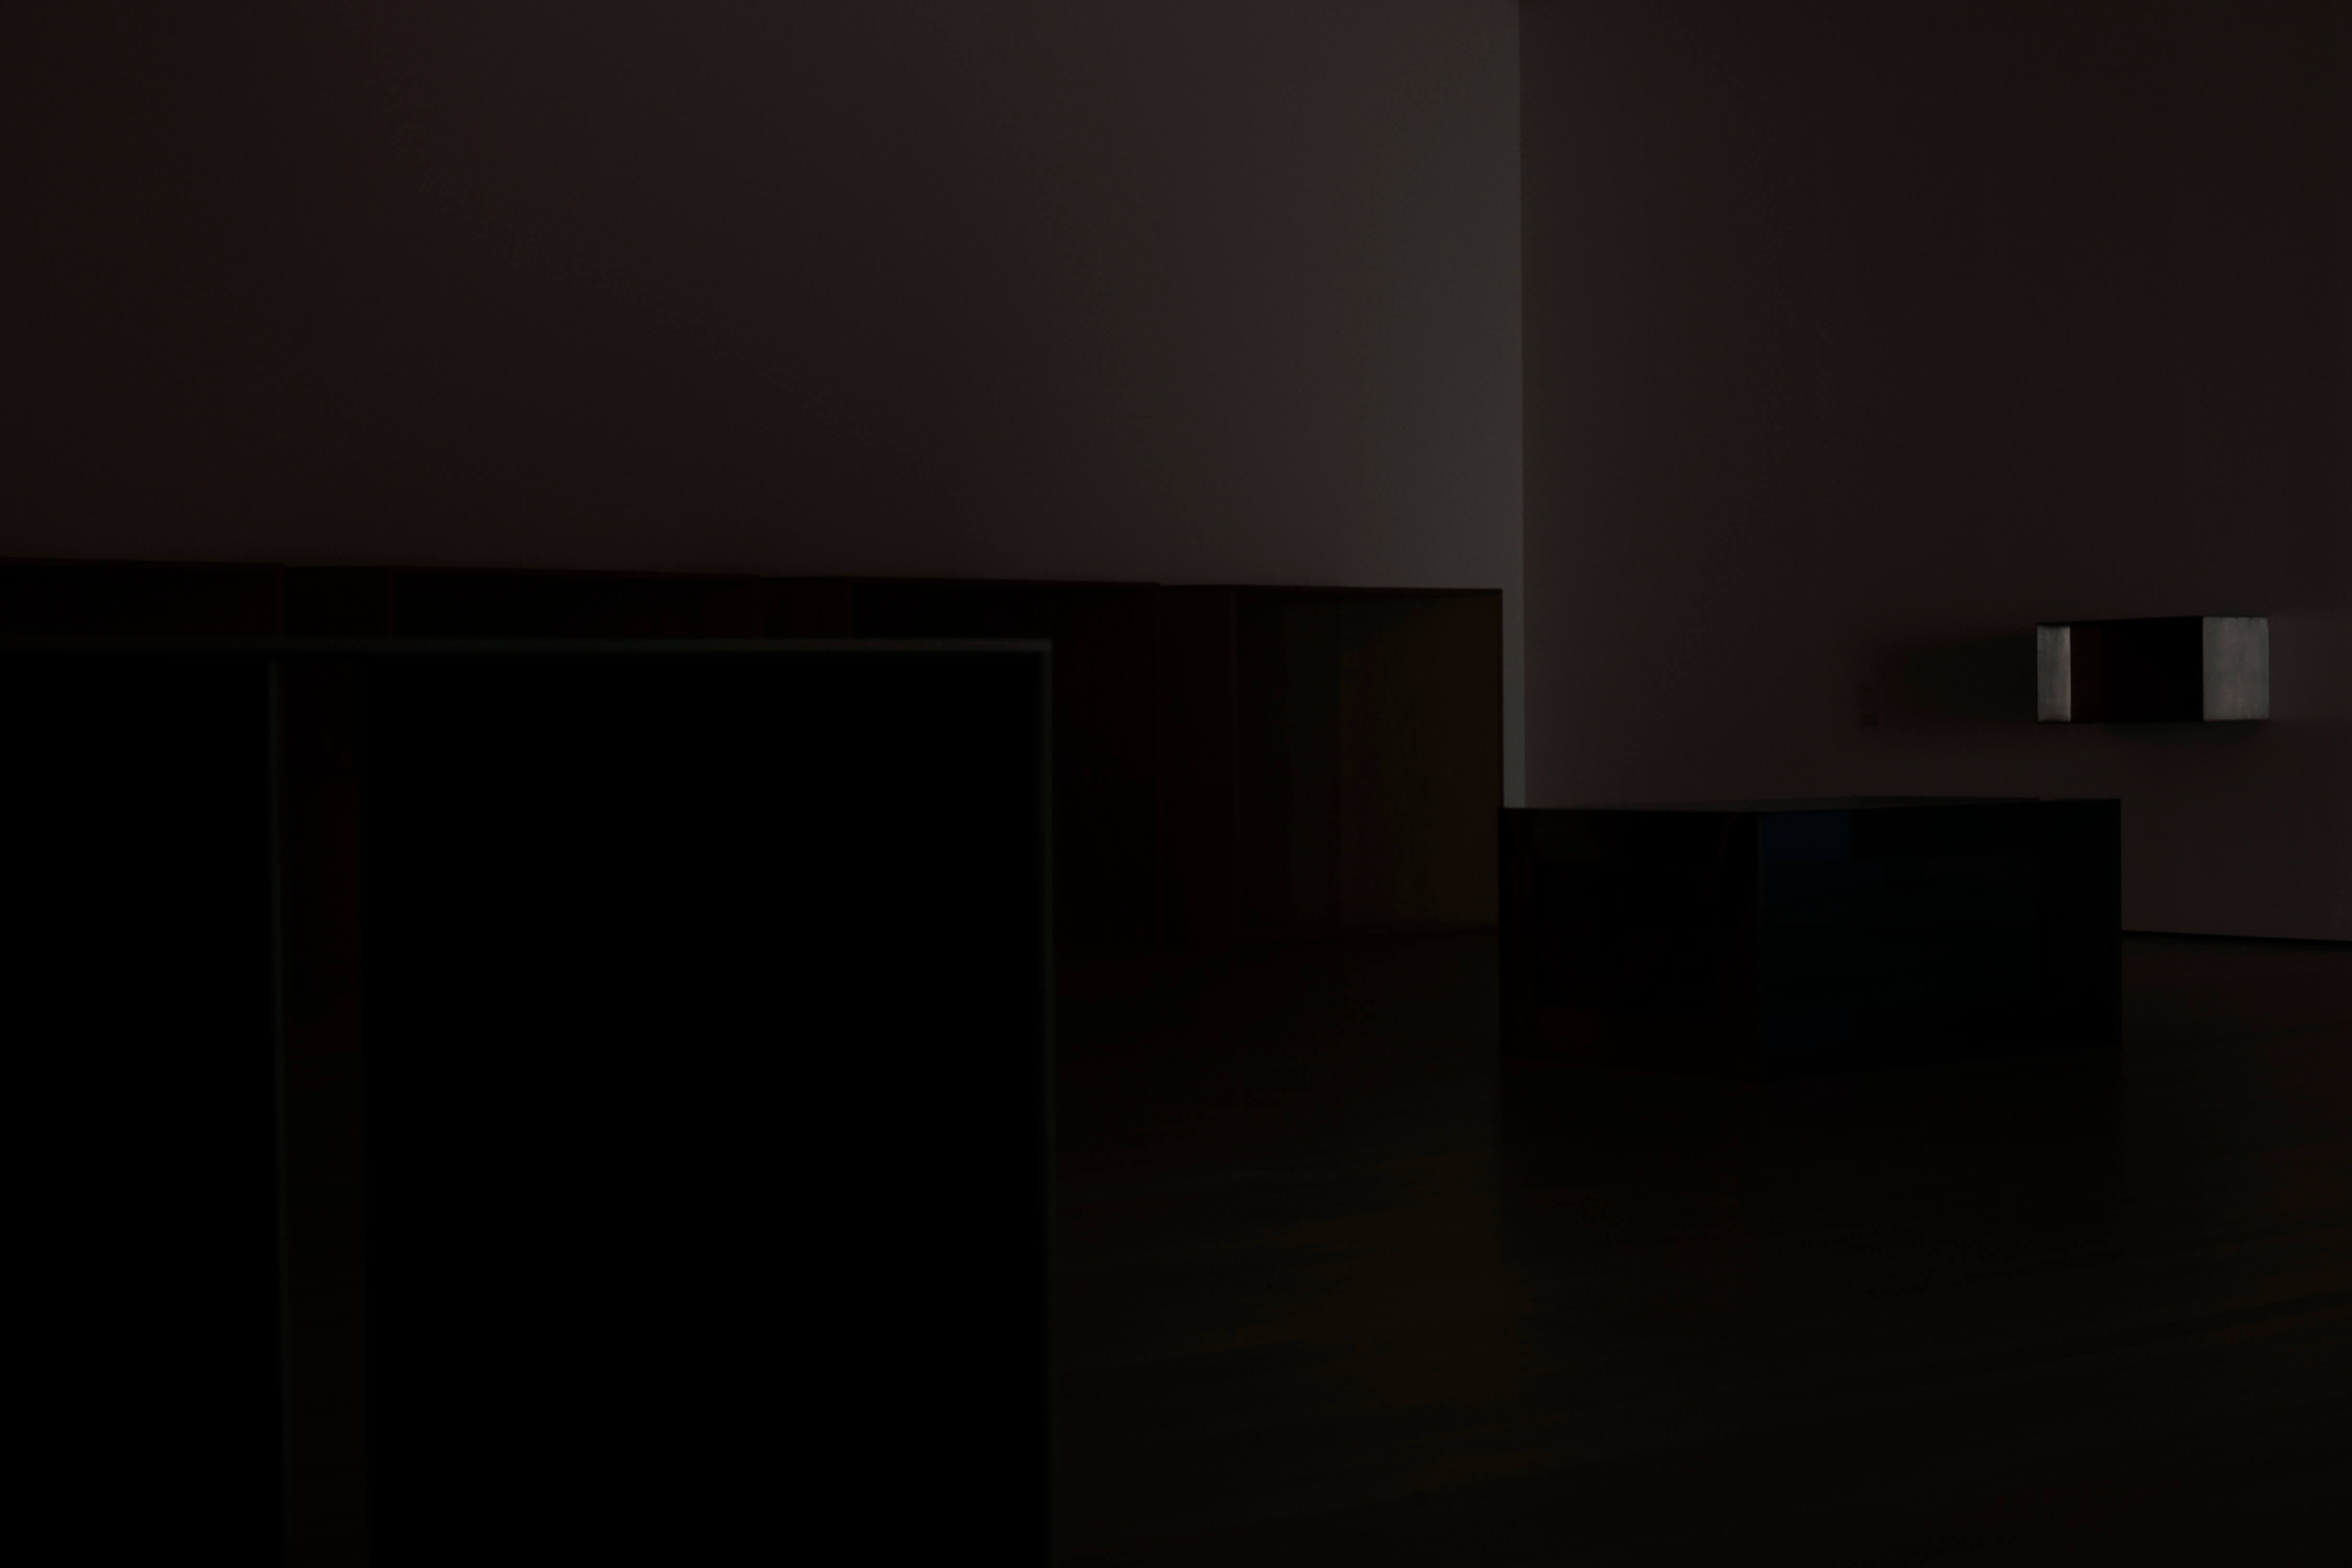 Louise Lawler, <em>Untitled (First Night)</em>, 2021.Dye sublimation print on museum box, 48 x 72 inches (121.9 x 182.9 cm). Courtesy of the artist and Metro Pictures, New York.